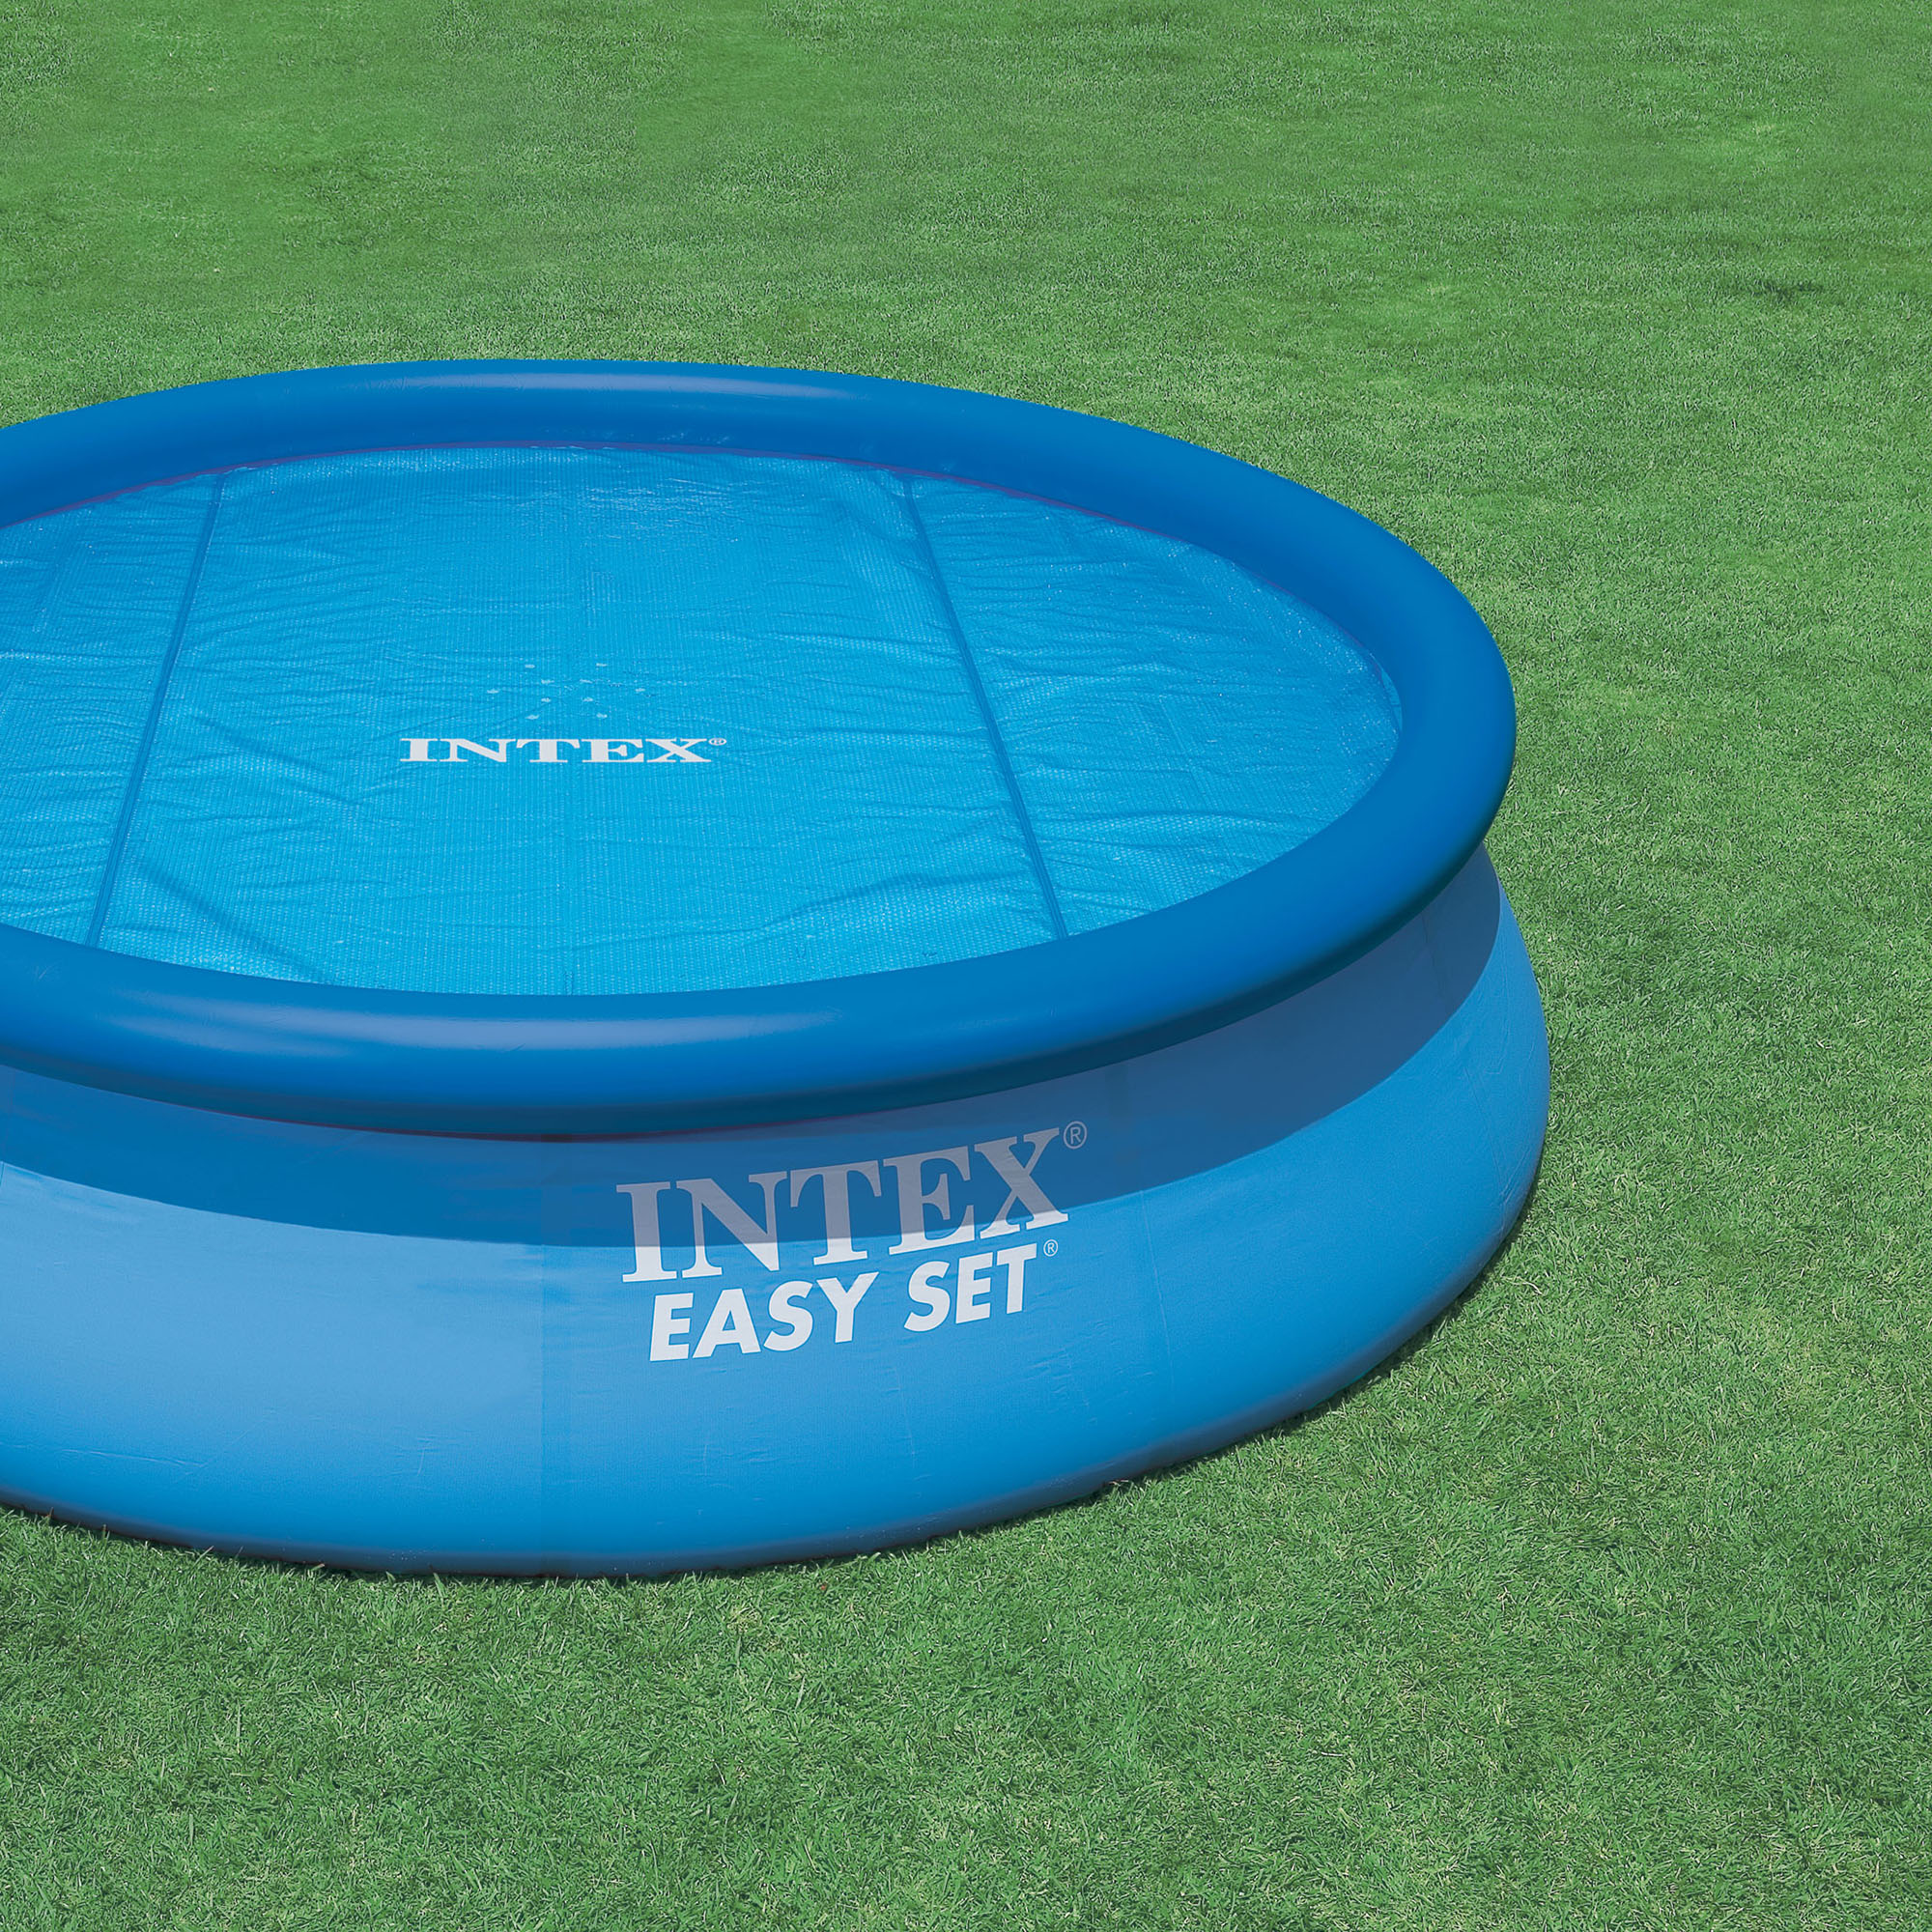 intex 15 foot round easy set vinyl solar cover for swimming pools blue 29023e ebay. Black Bedroom Furniture Sets. Home Design Ideas